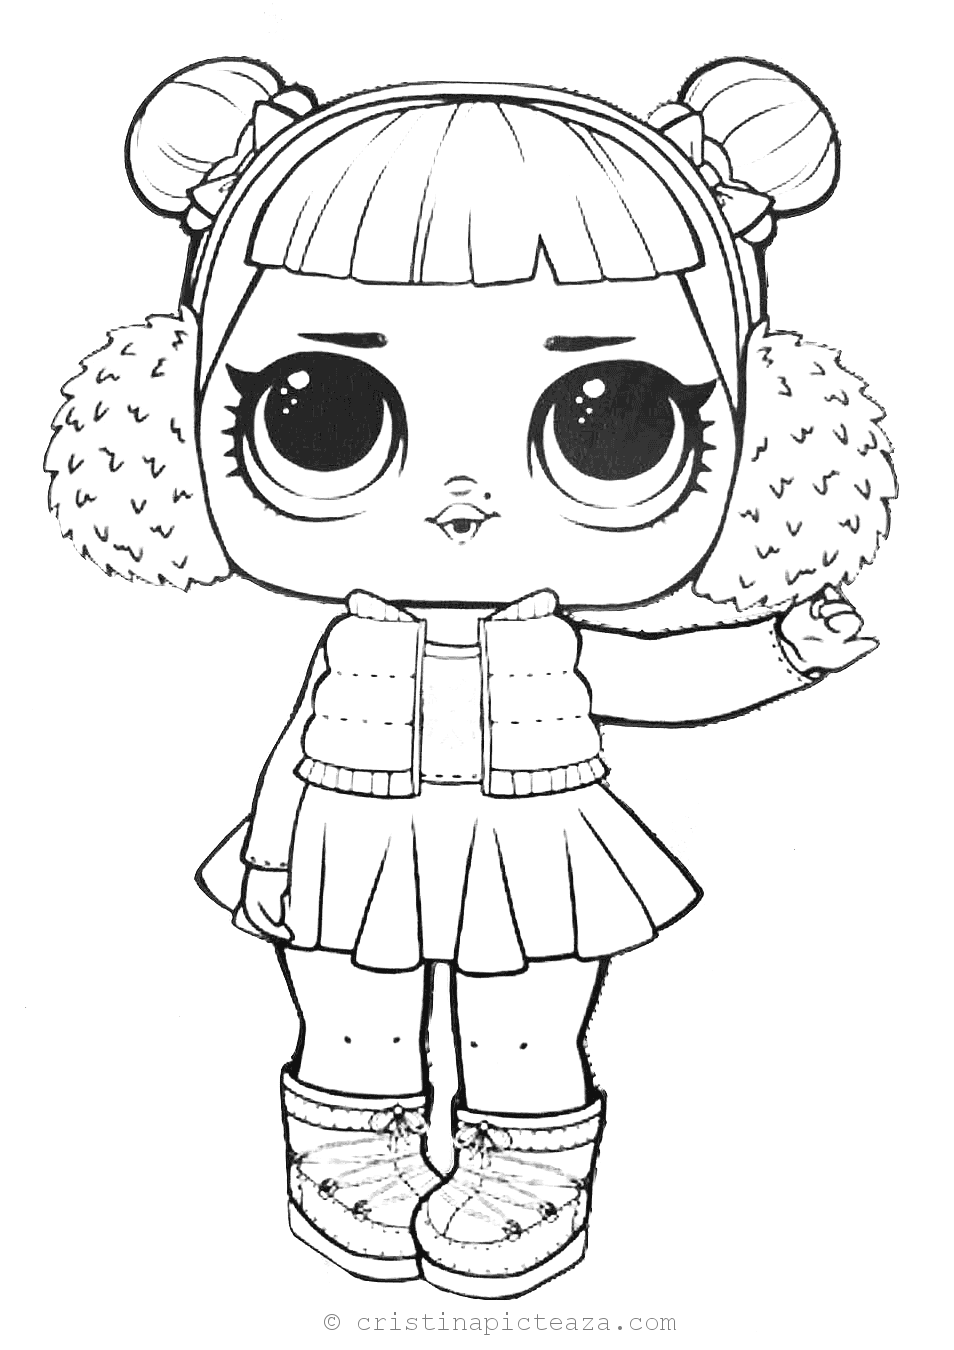 coloring picture lol 40 free printable lol surprise dolls coloring pages lol coloring picture